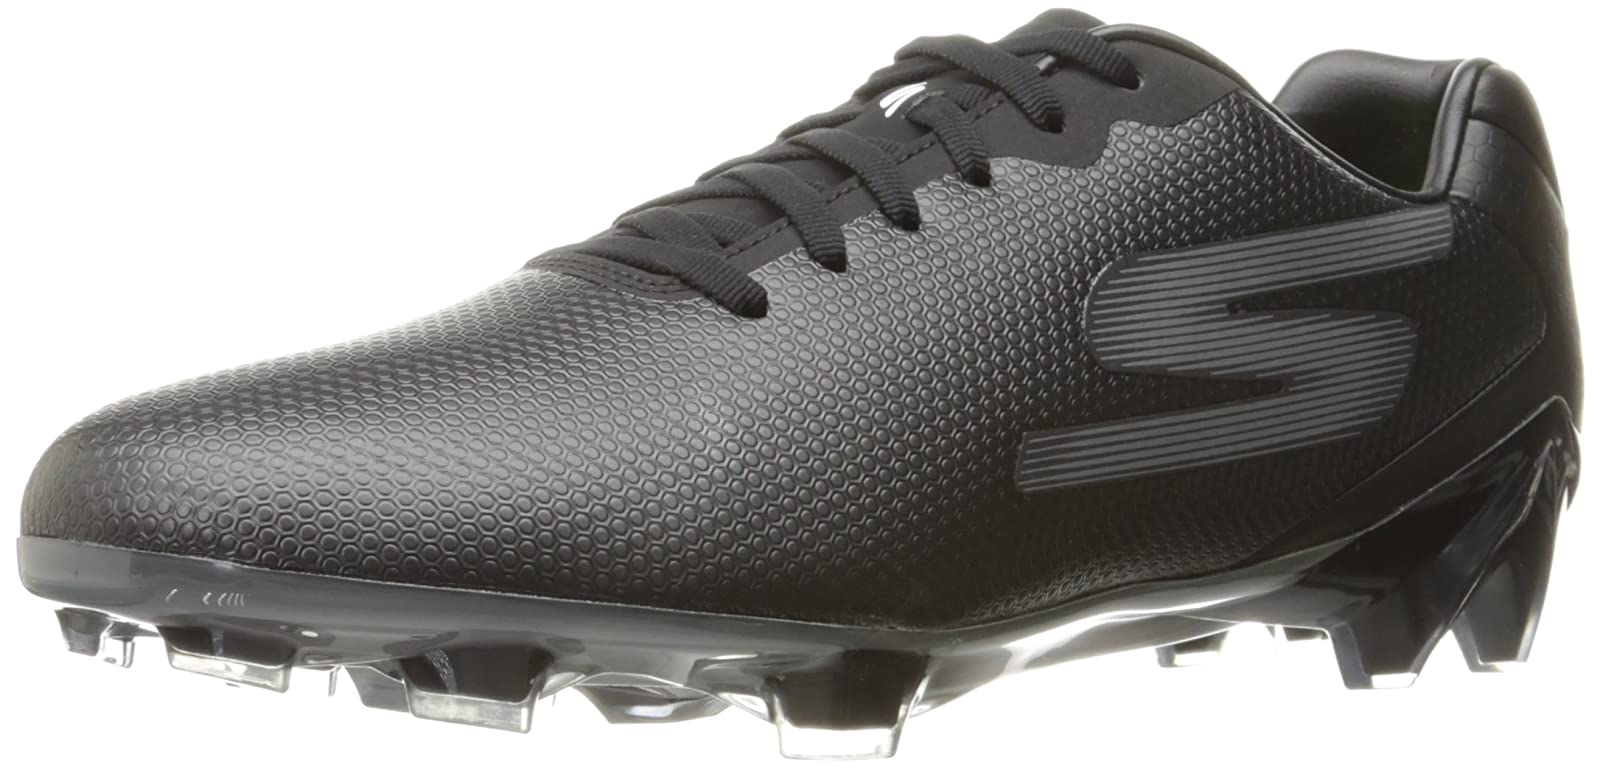 Skechers Performance Men's Go Galaxy FG White/Black - 1